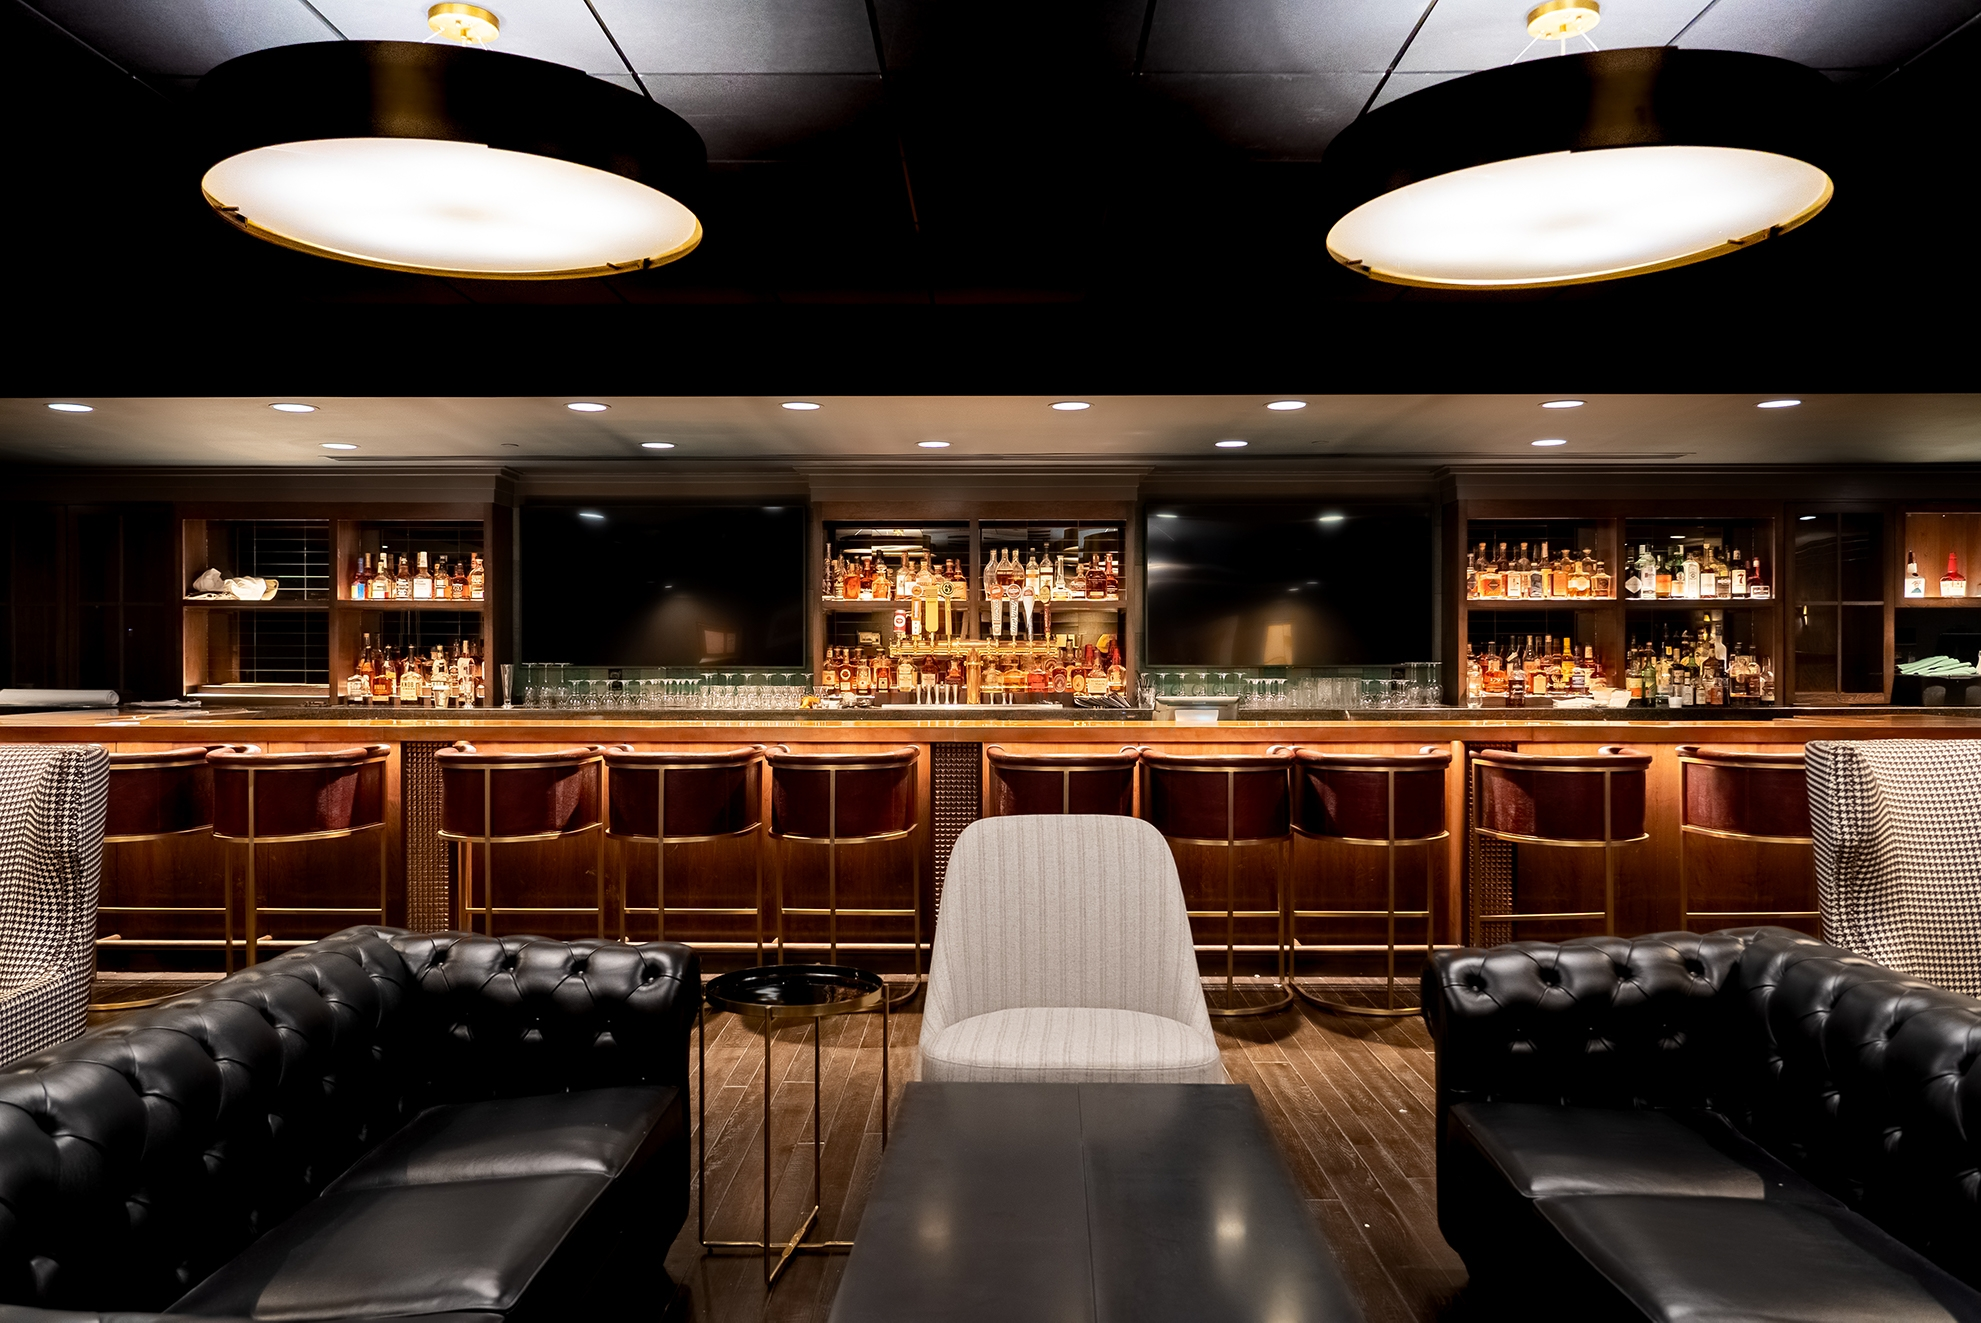 Jockey silks bourbon bar louisville ky located in the galt house